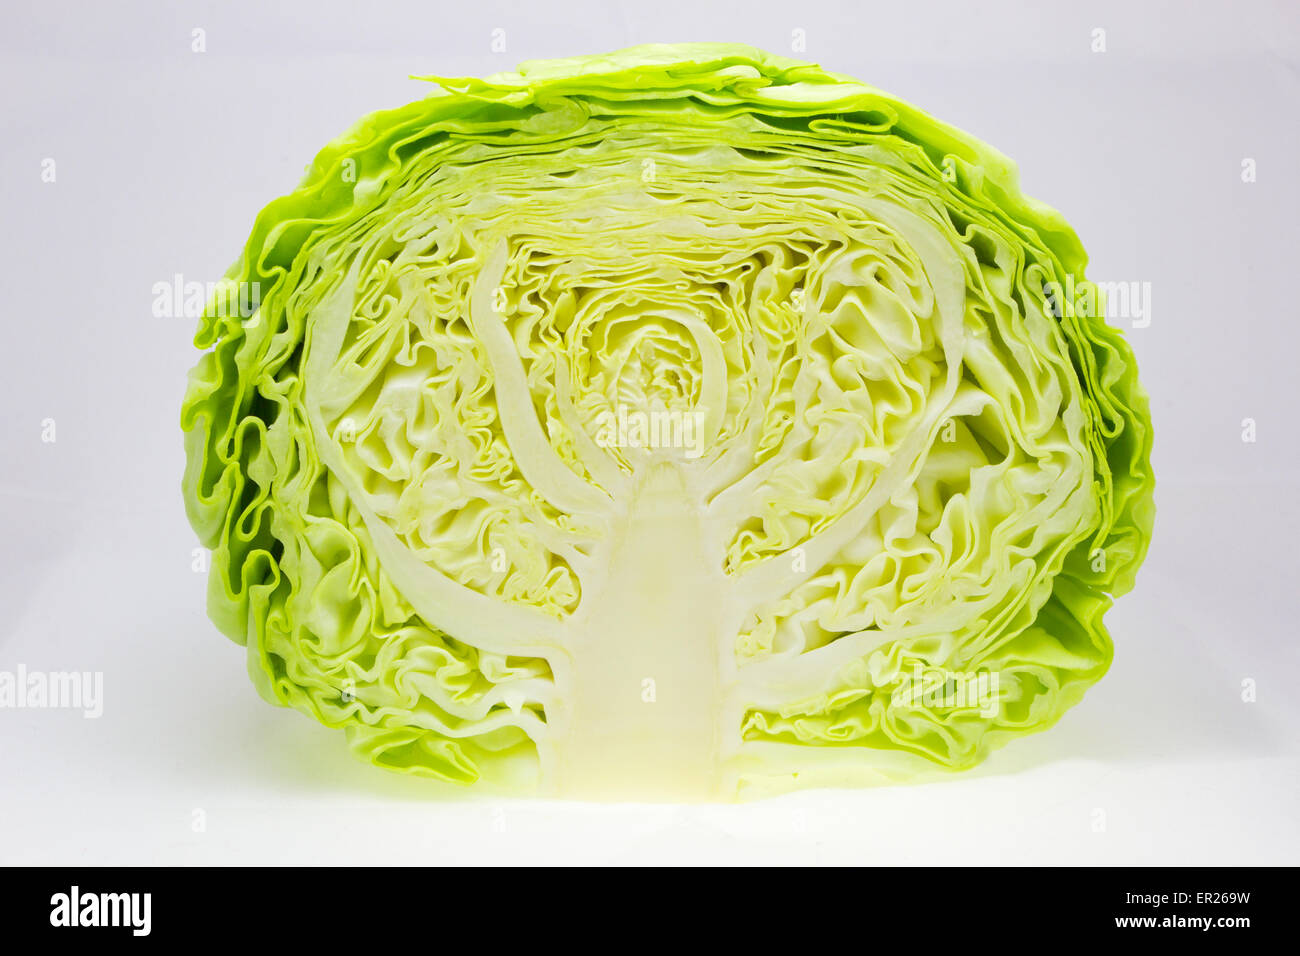 Fresh and green cabbage cut in half - Stock Image